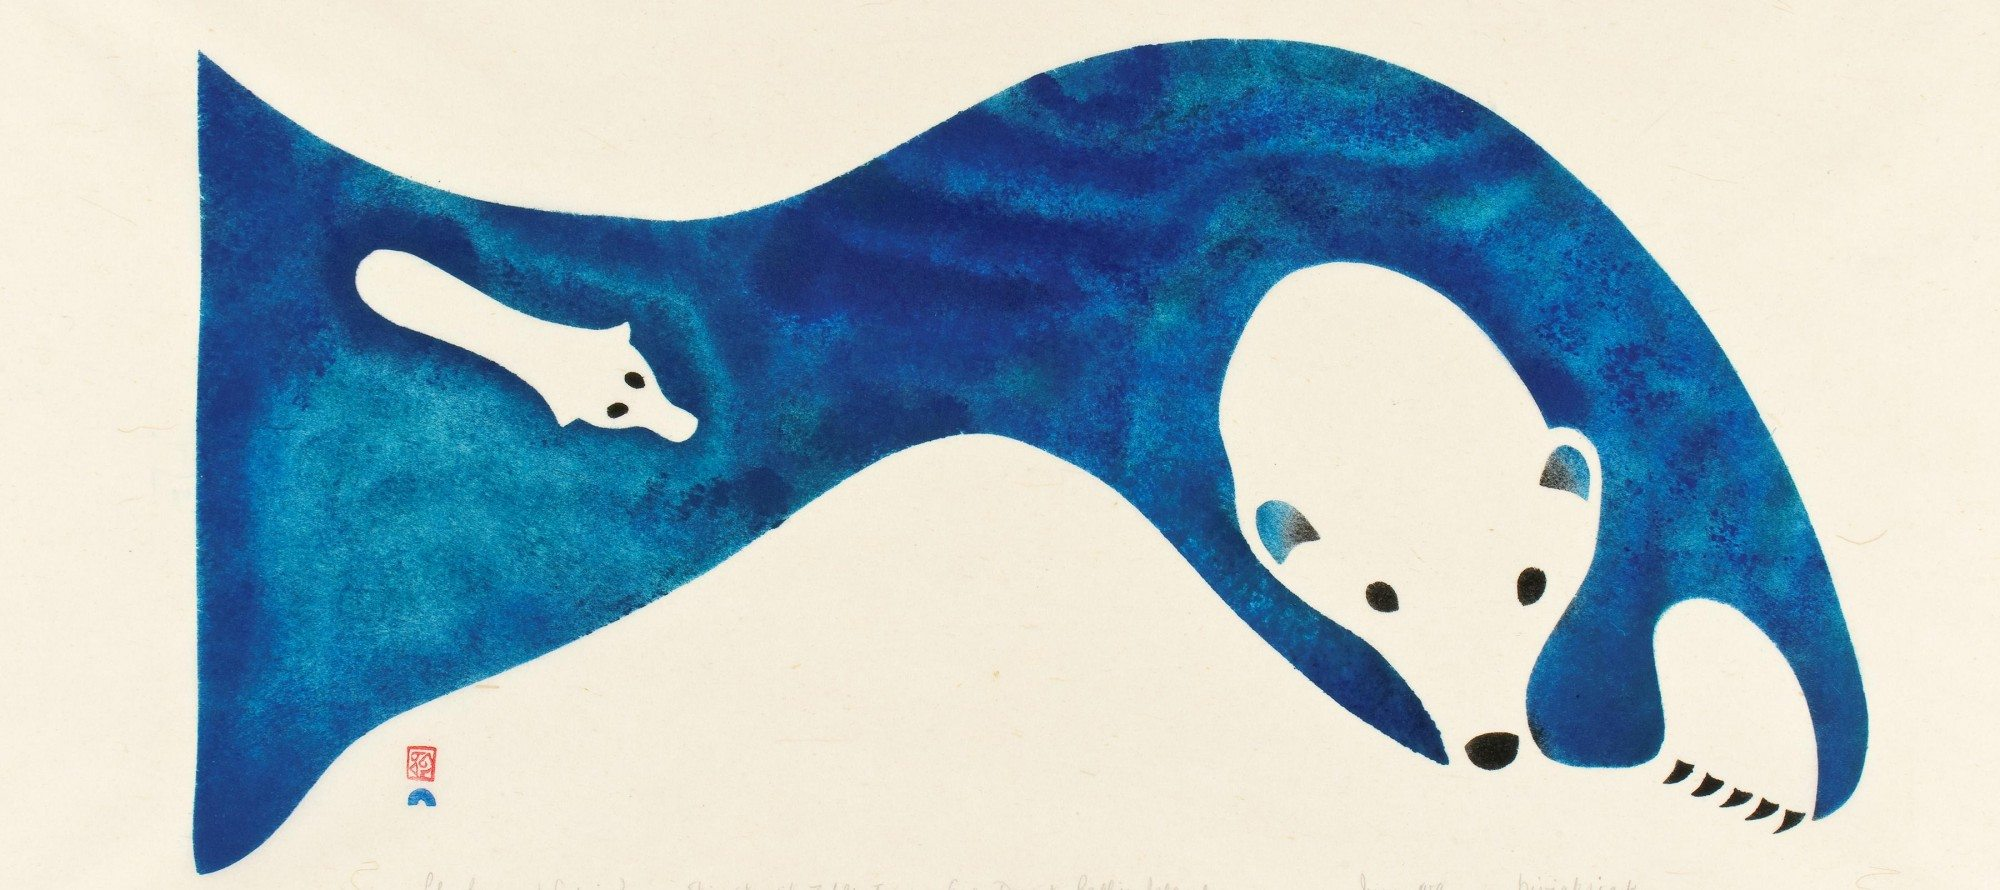 ARTFUL BLOGGER: Inuit art's Japanese connection revealed in new exhibit